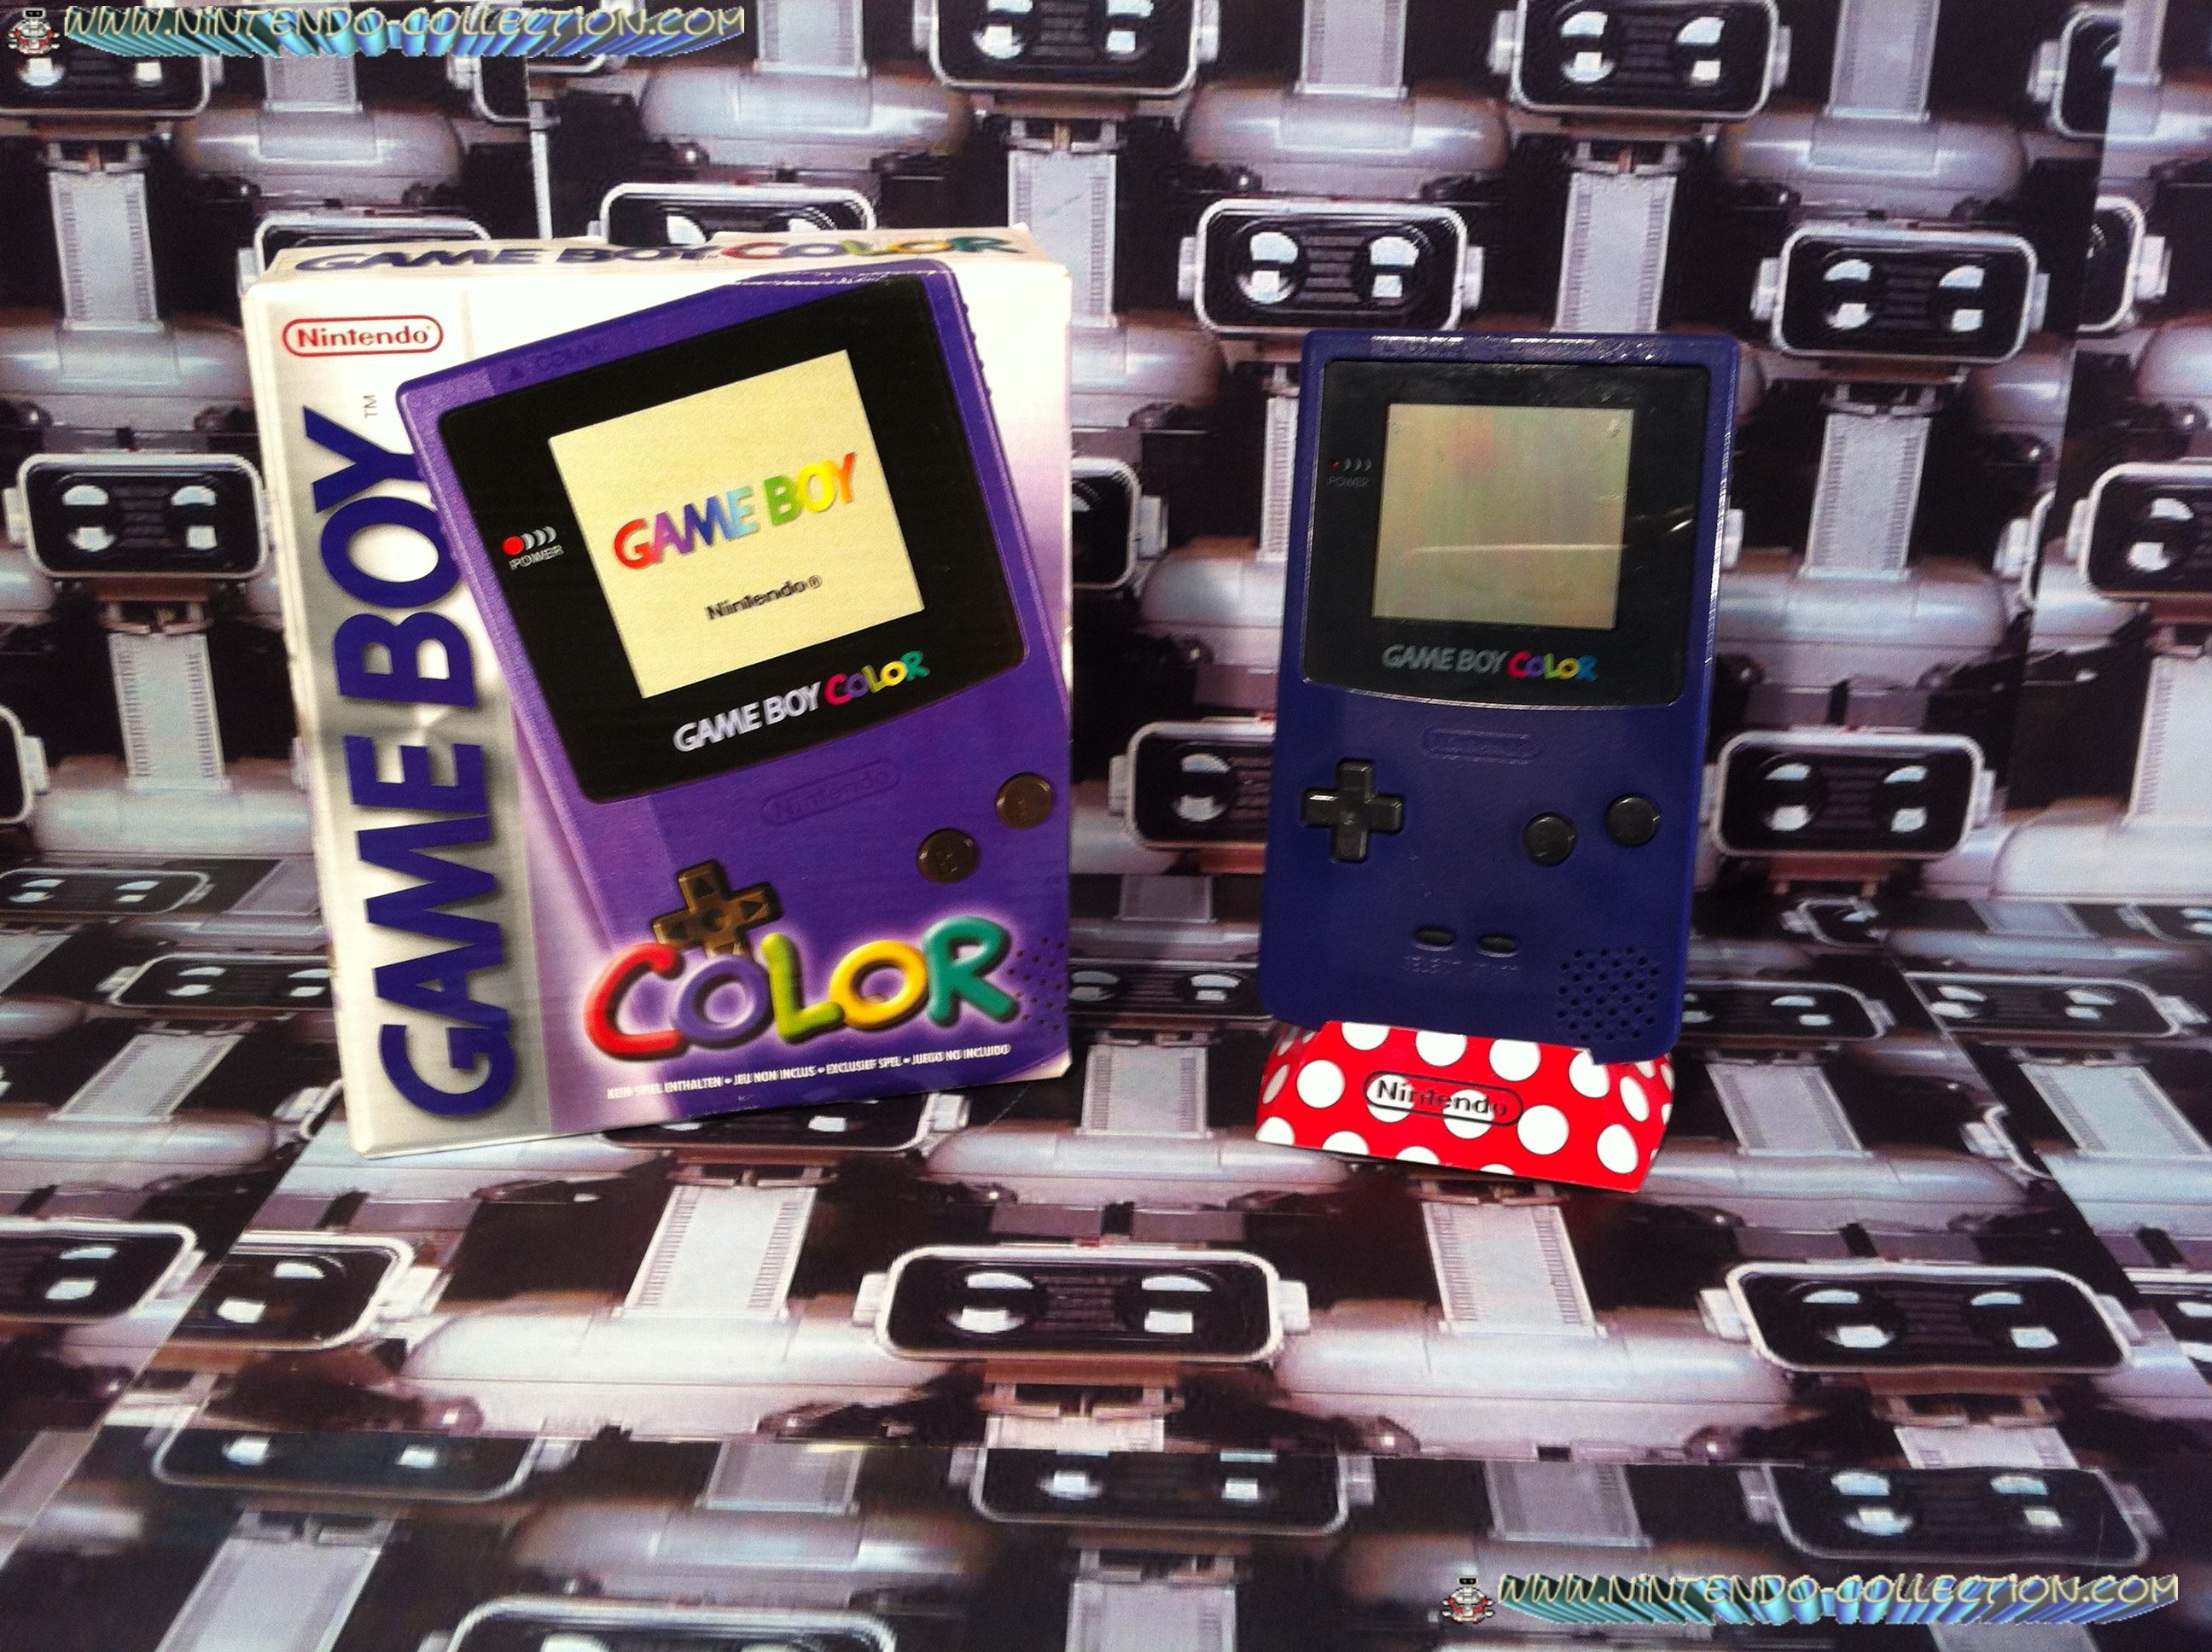 www.nintendo-collection.com - Gameboy Color violette purple edition european europe